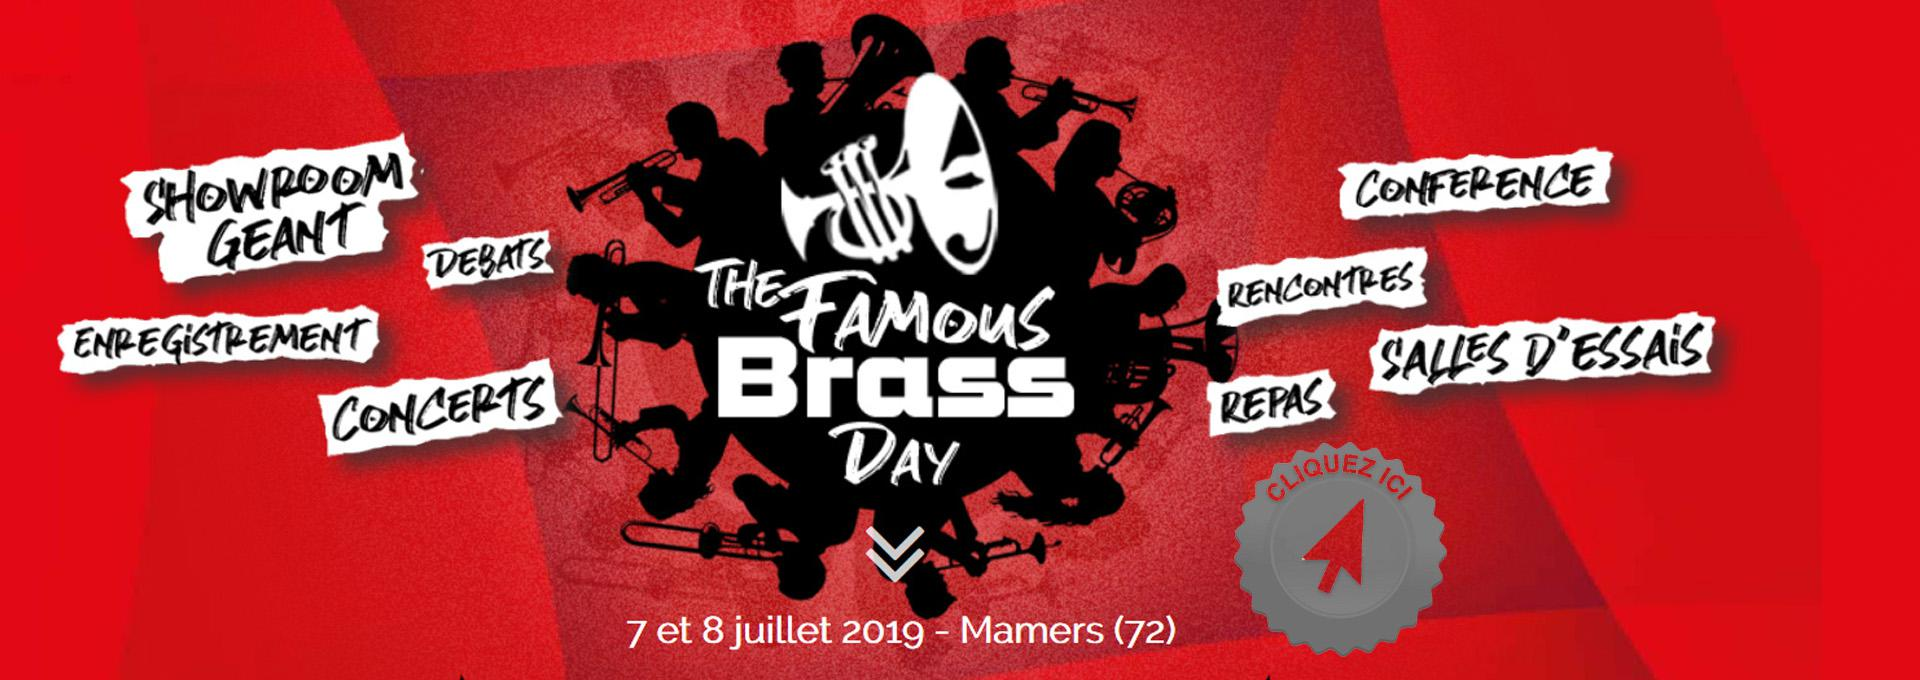 THE FAMOUS BRASS DAY 2019